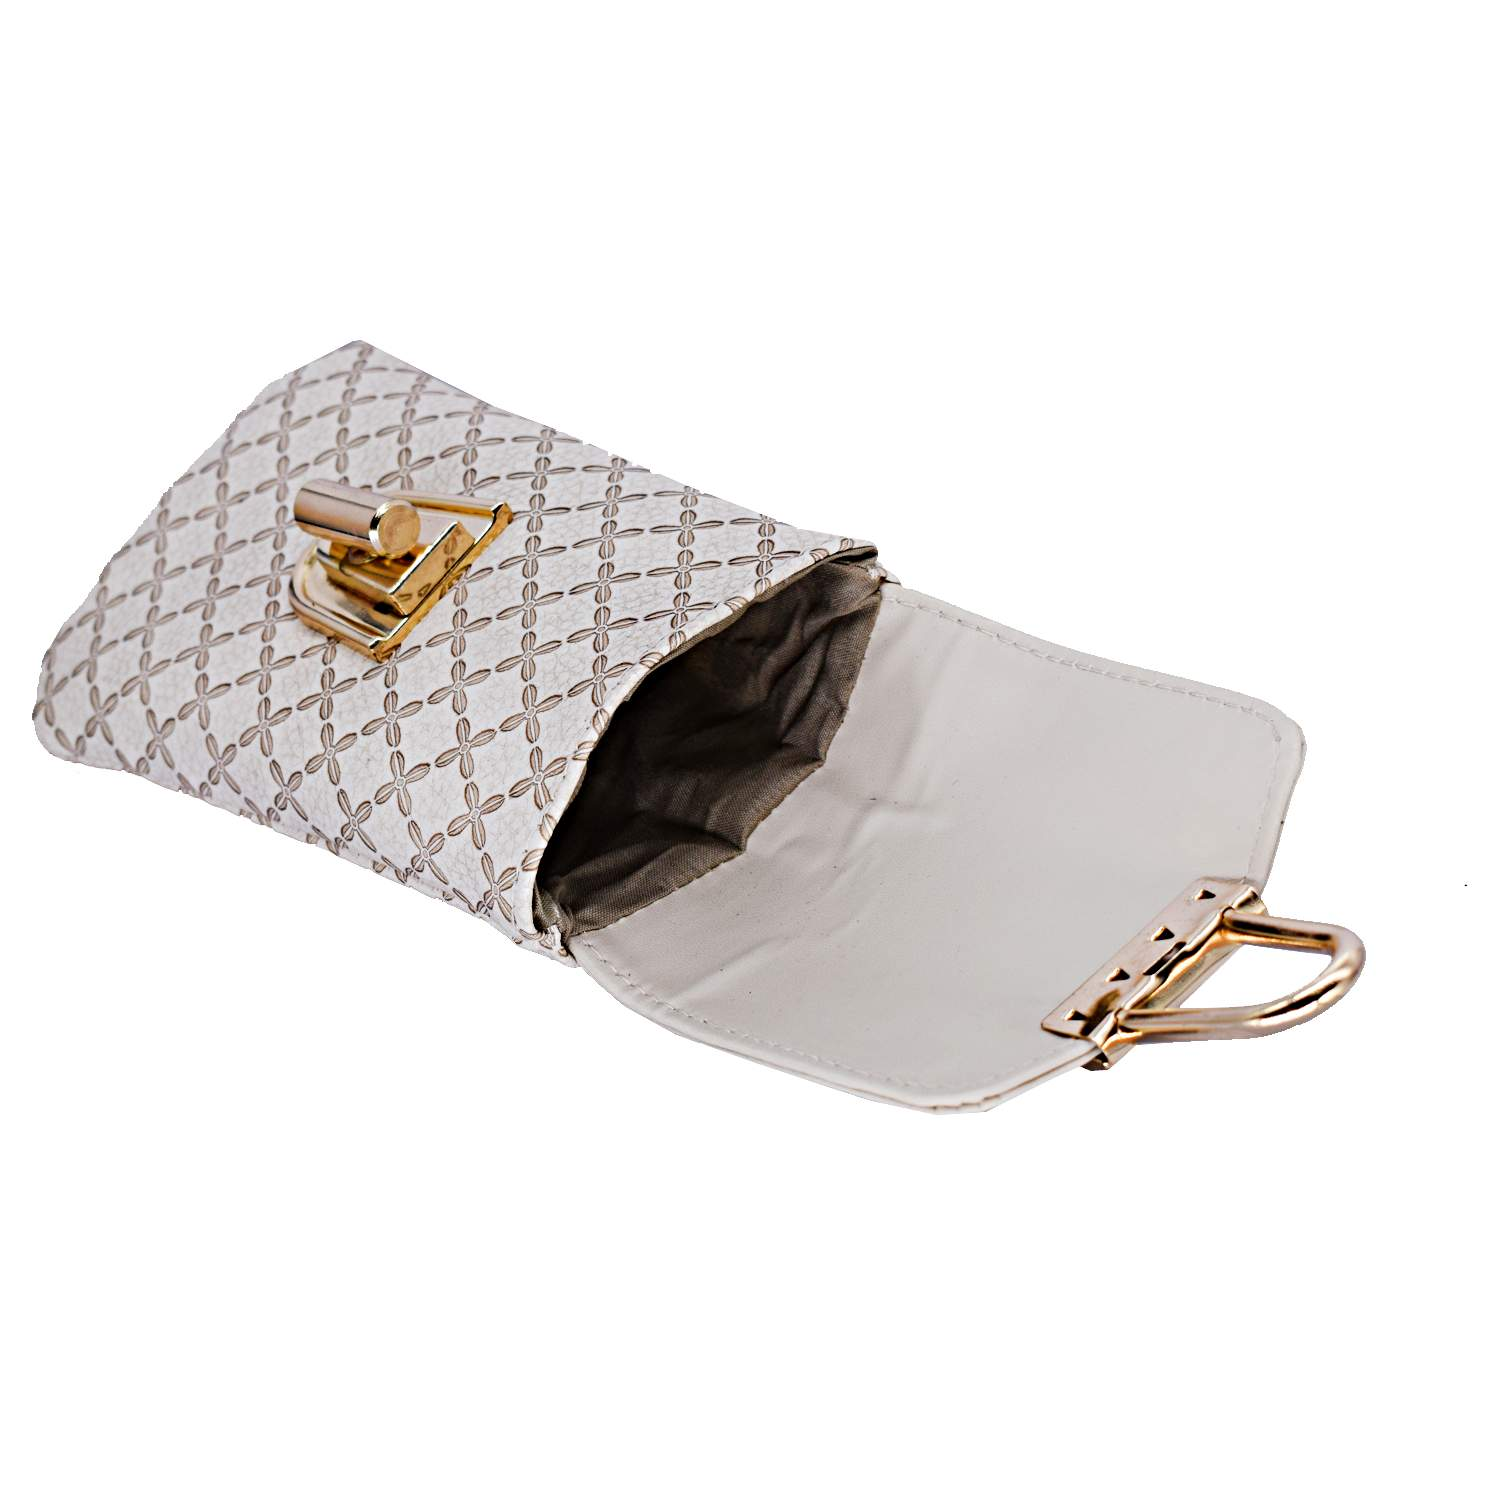 Ethnic Leather Saree Clutch Mobile Pouch Waist Clip Pouch (White) - Bagaholics Gift